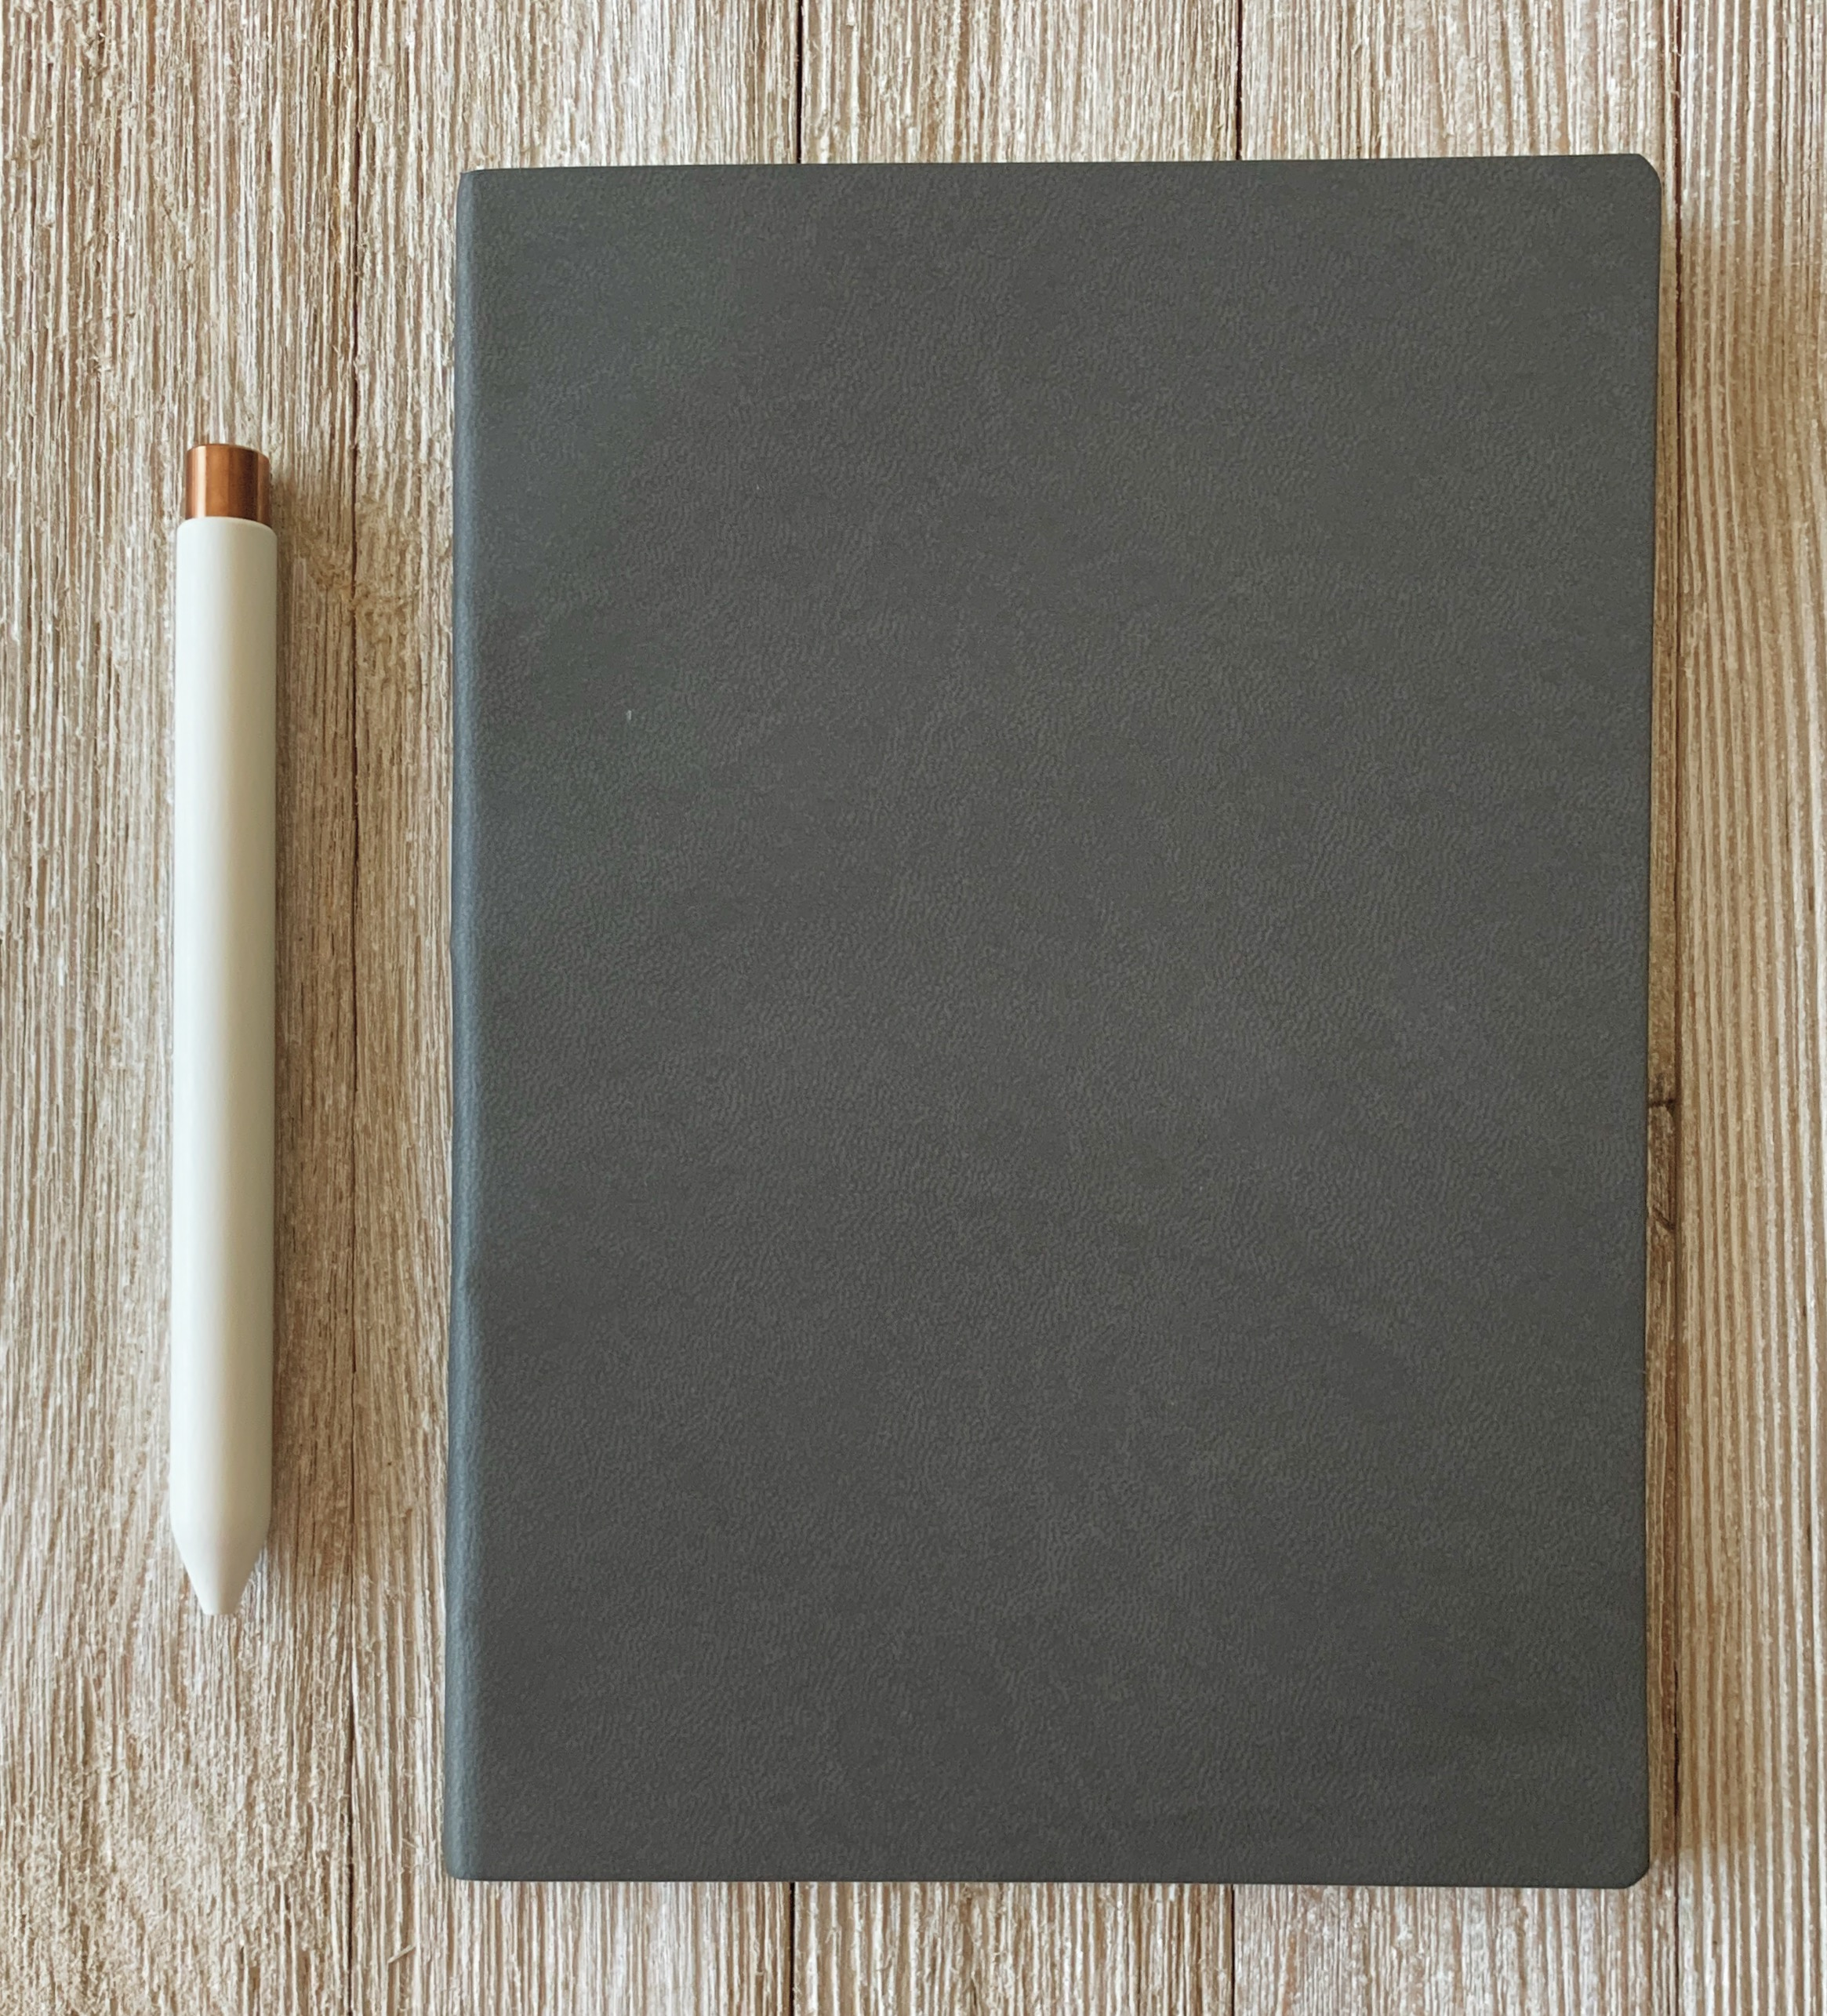 Studio Neat Totebook Notebook